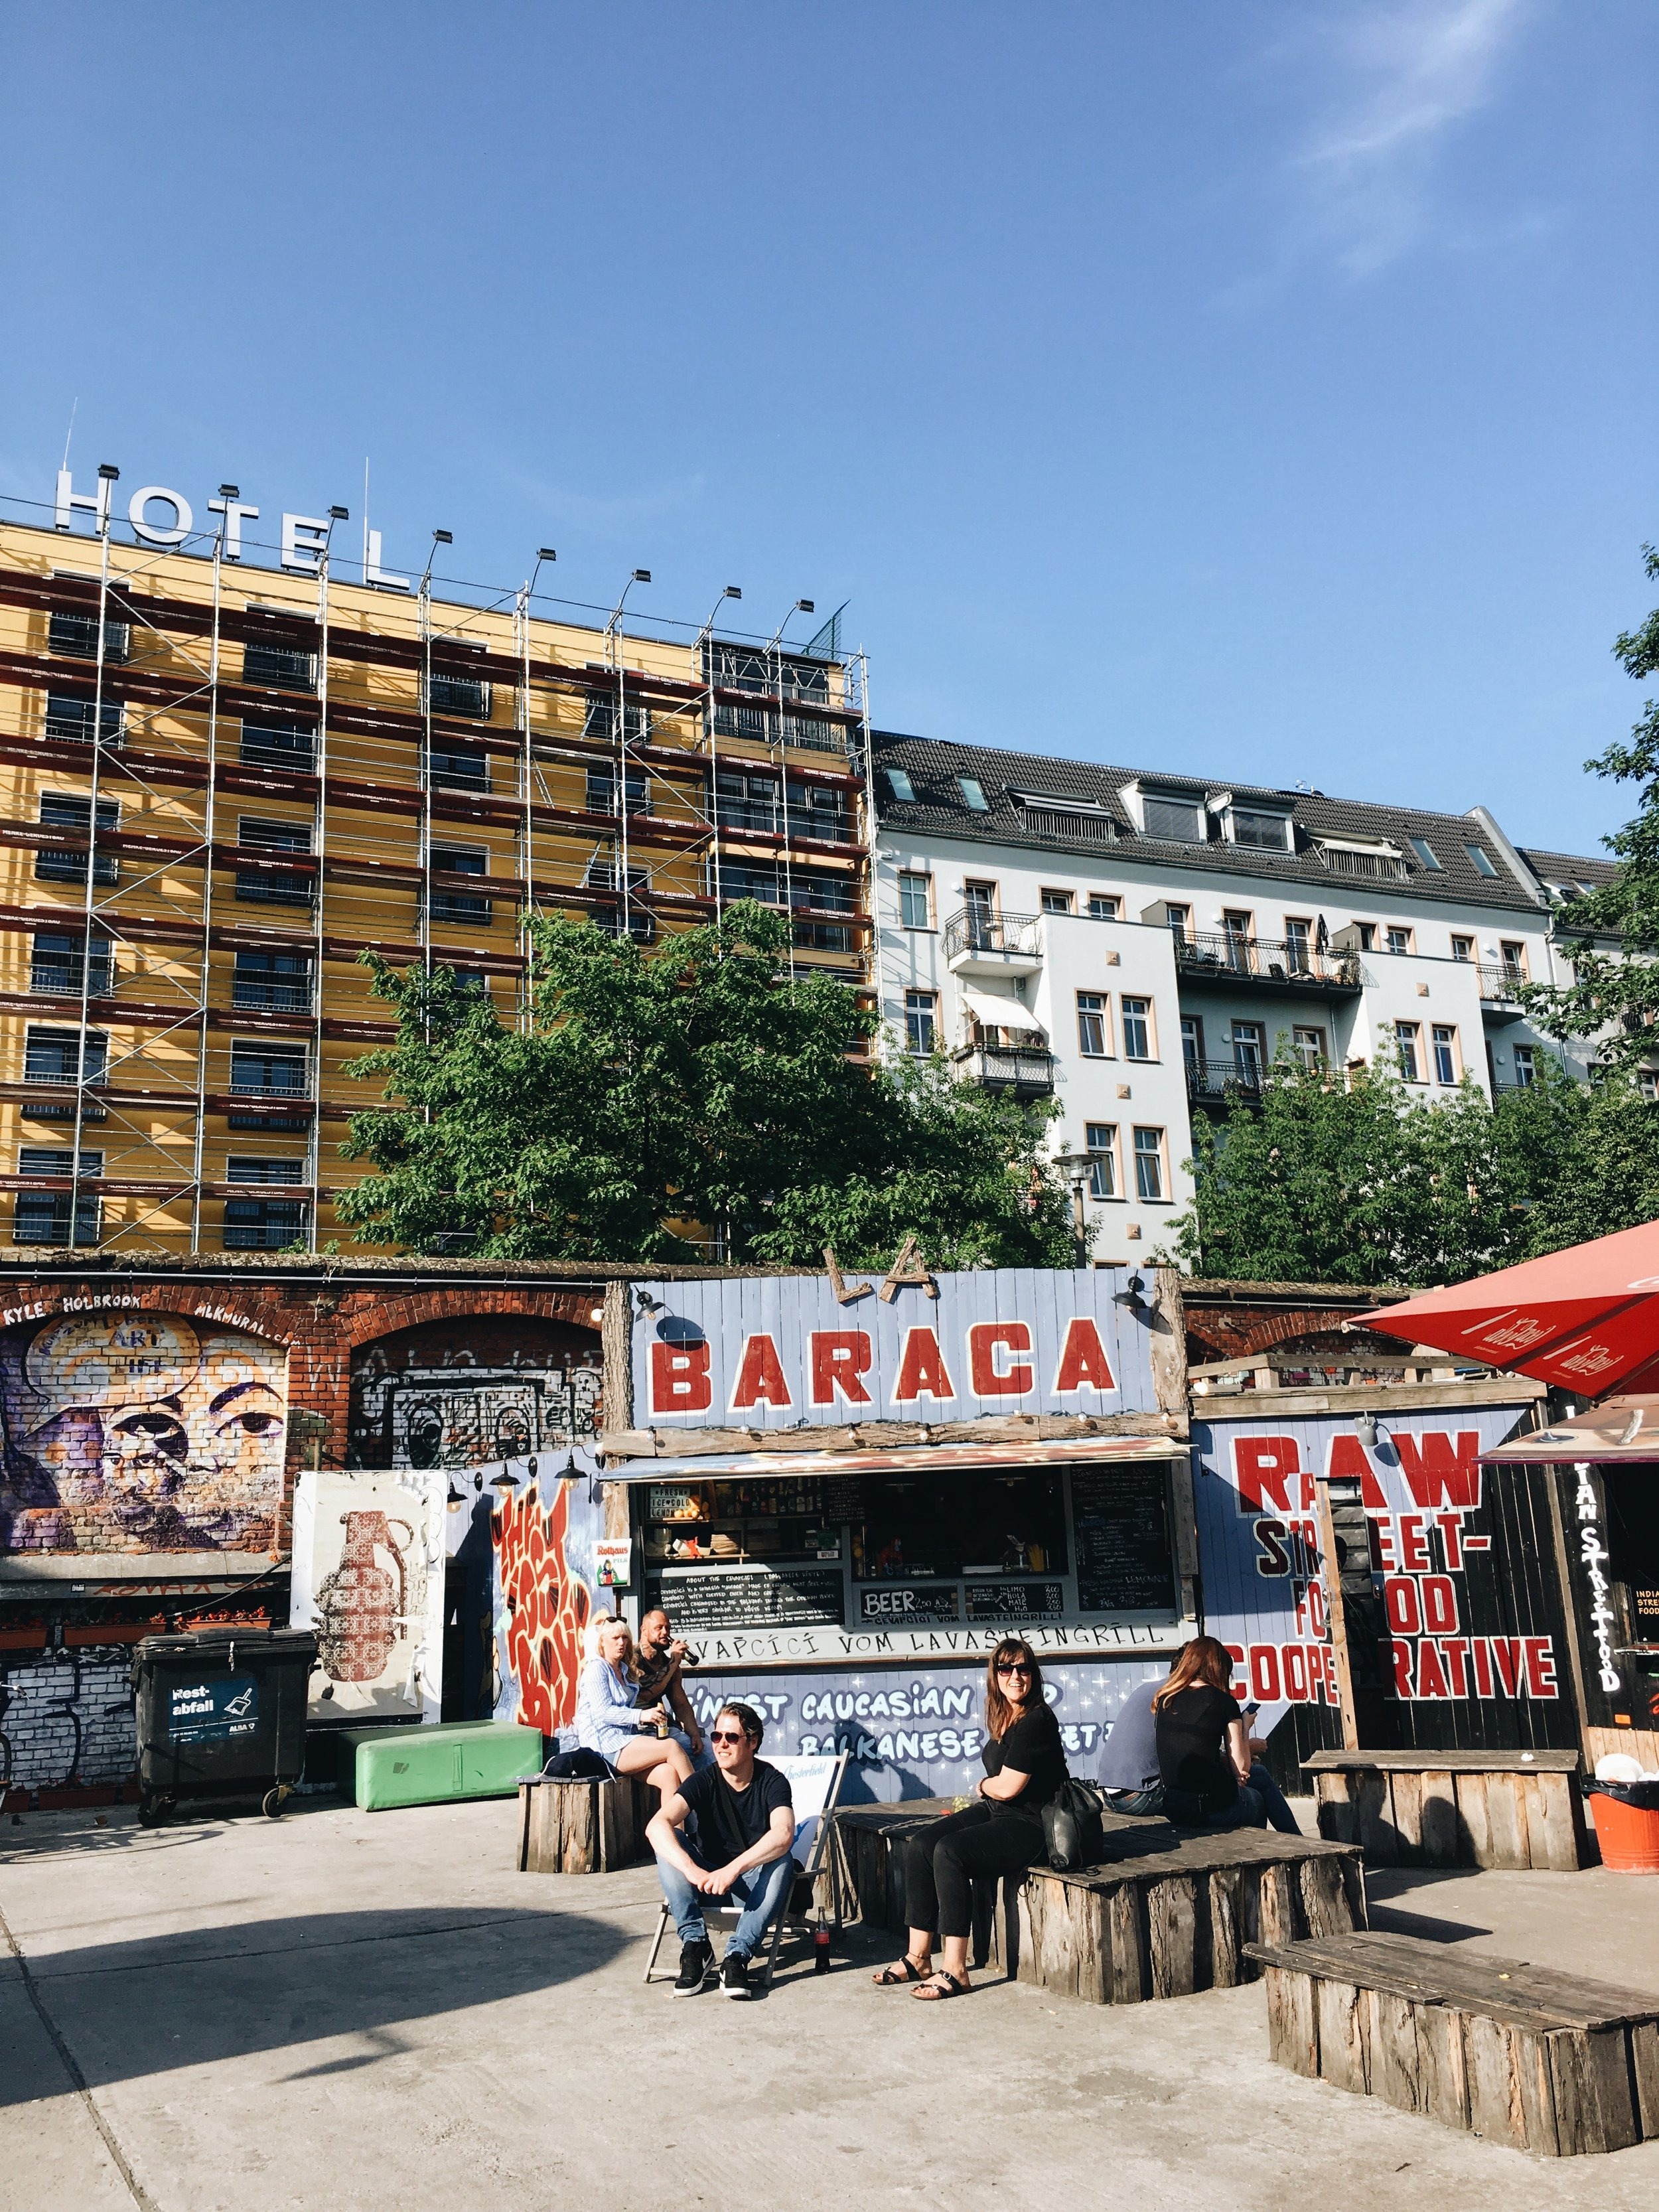 Neue Heimat - vintage shopping, photo locations and great street food in one of Berlin's coolest neighborhoods